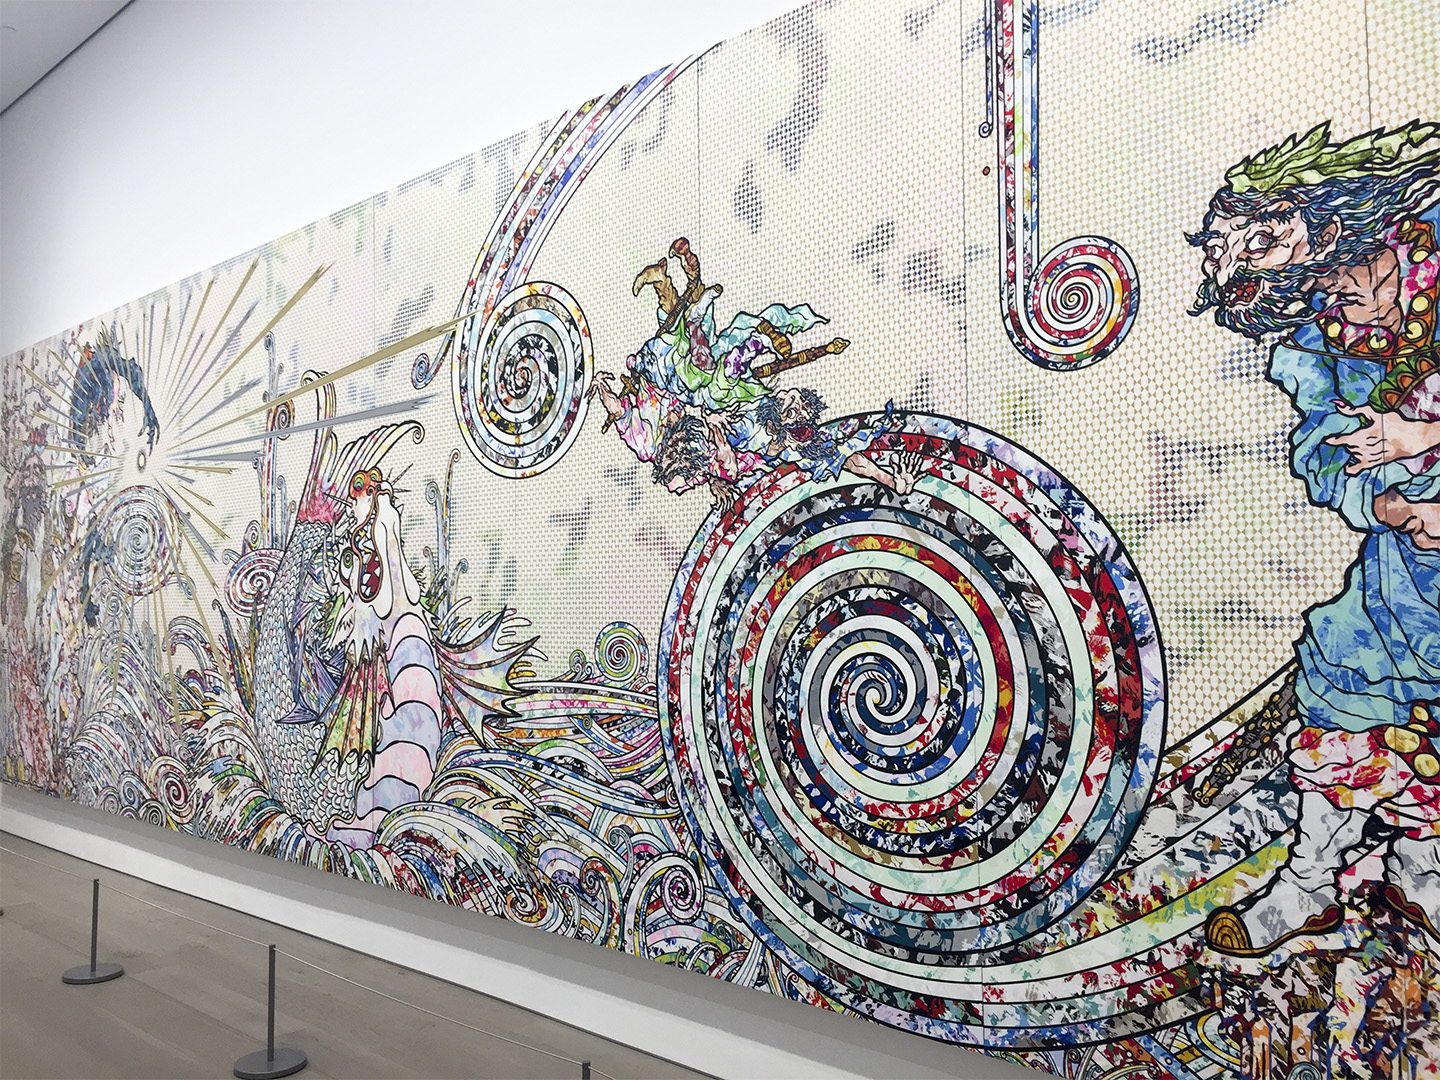 "A portion of Takashi Murakami's ""Transcendent Attacking a Whirlwind"" (2017). Acrylic, gold leaf, and platinum leaf on canvas mounted on wood panel, 300 x 1000 cm (10 panels) photo by Megan Lee / Meniscus Magazine)"